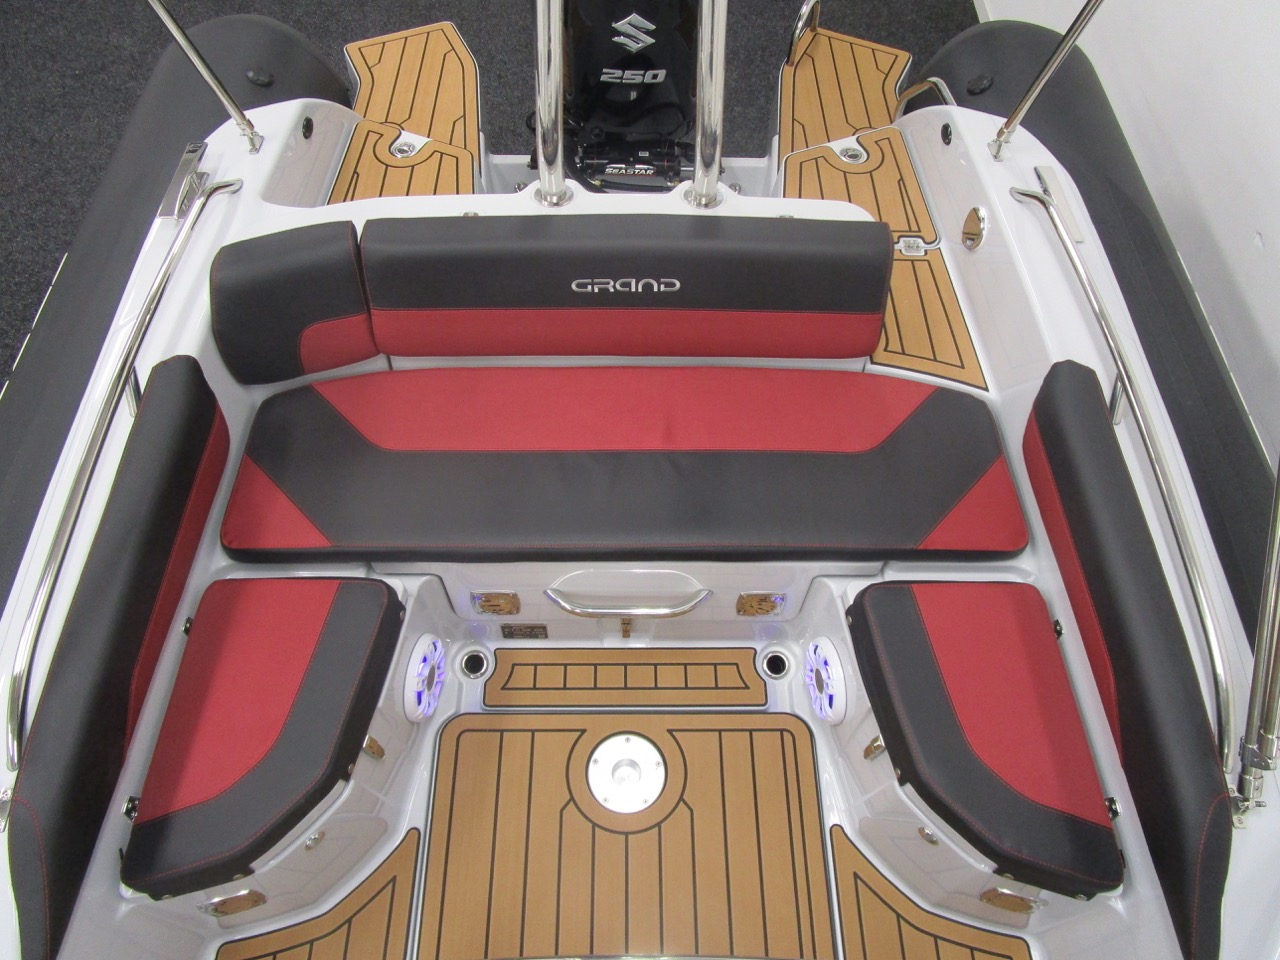 GRAND G750 RIB U-shaped rear seats